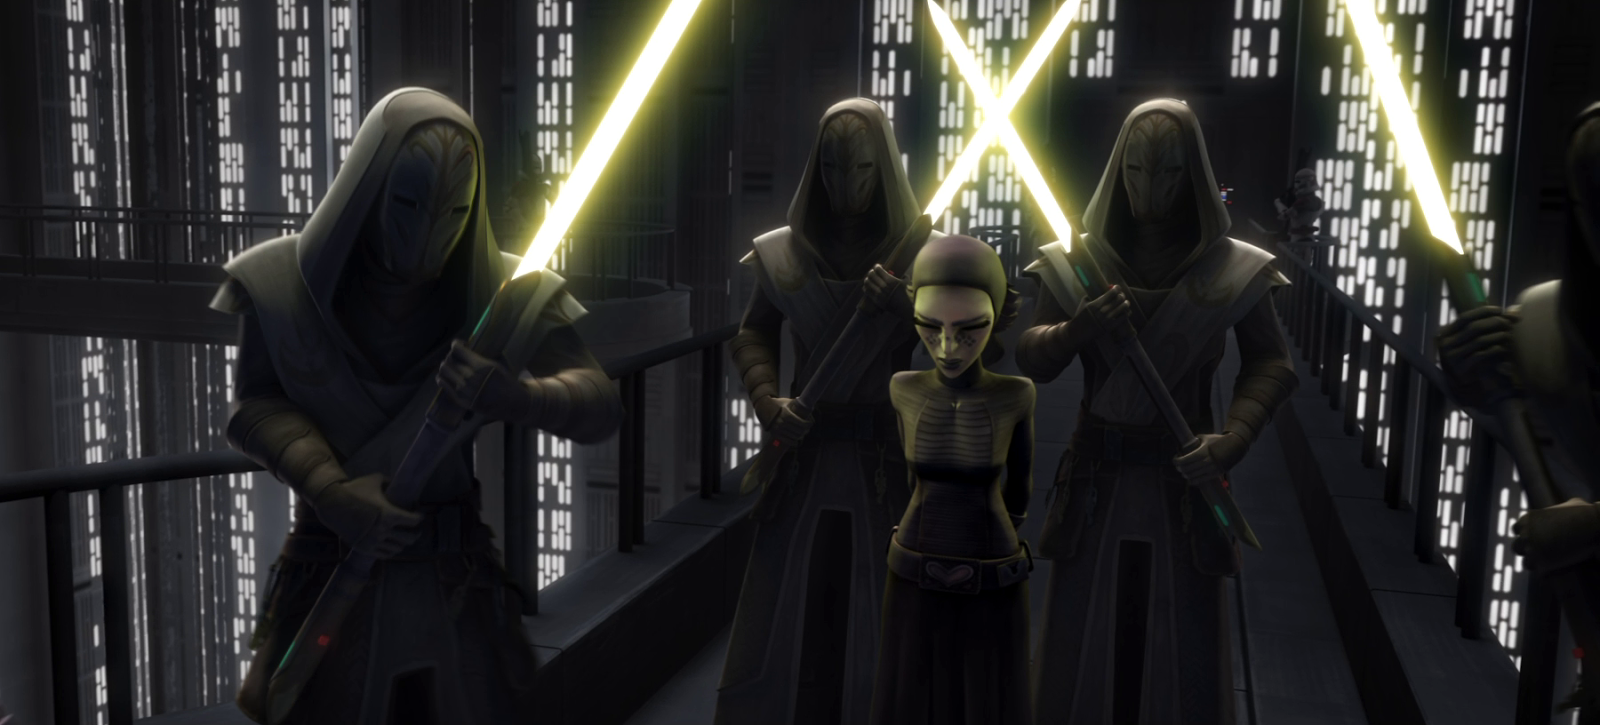 Dave Filoni Reveals Intriguing Star Wars Rebels Details